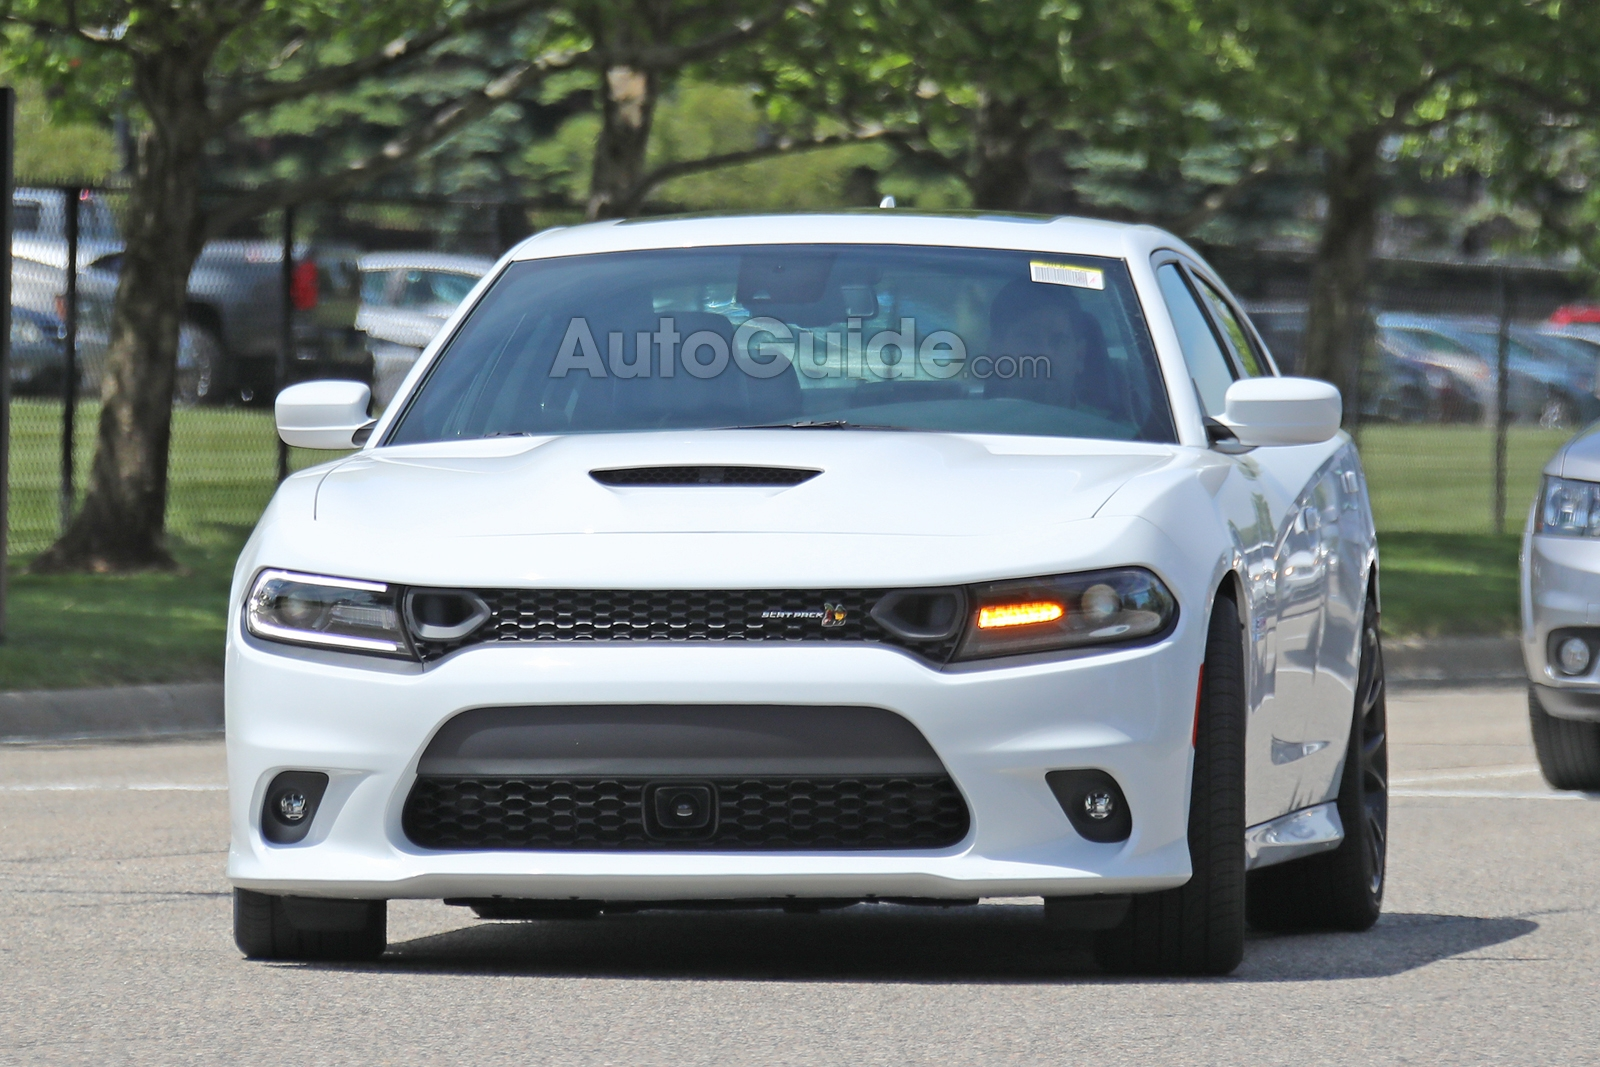 2019 Dodge Charger Scat Pack Revealed In New Spy Photos